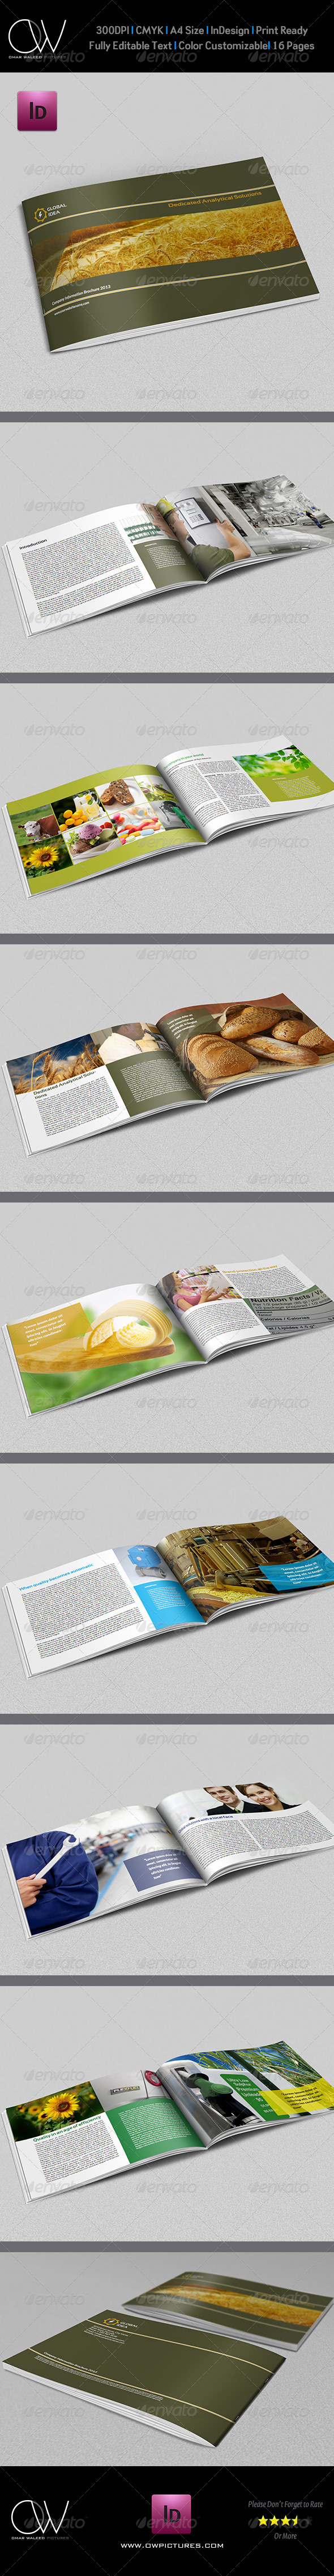 GraphicRiver Company Brochure Template Vol.6 16 Pages 5523422